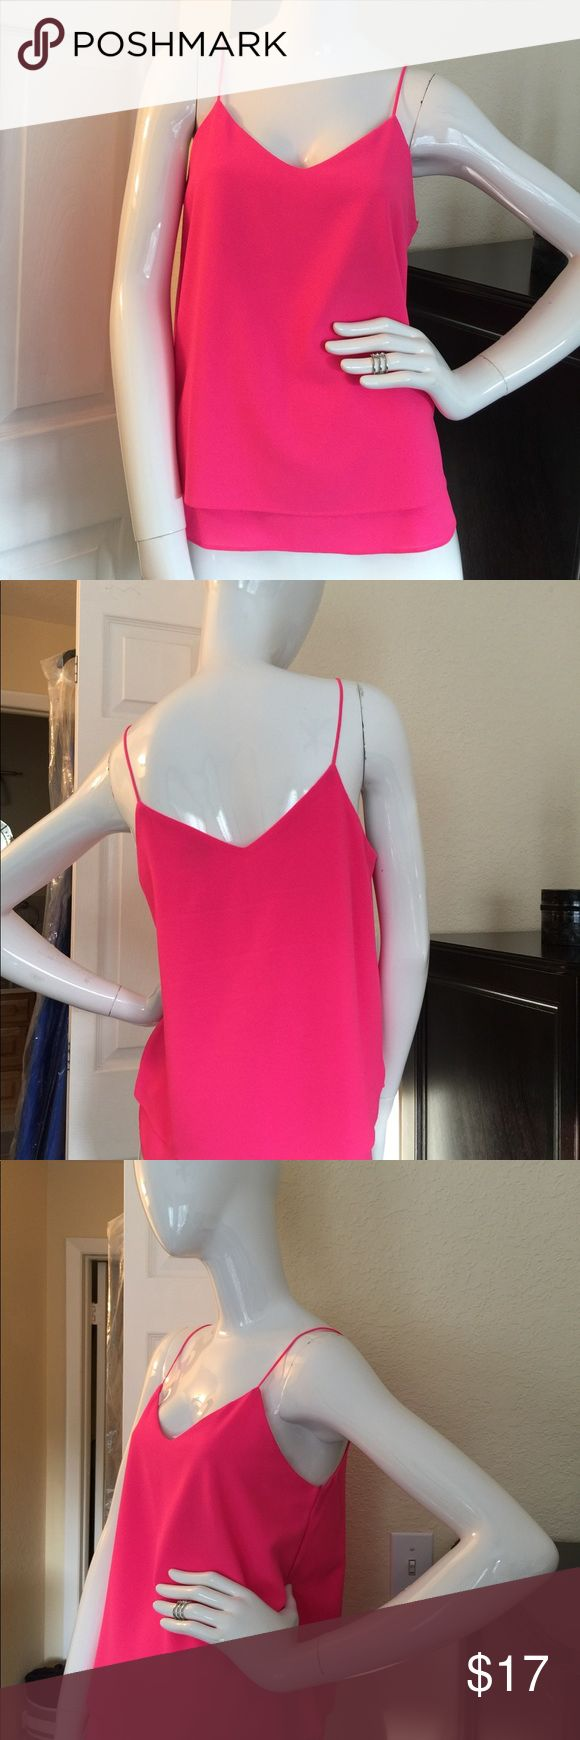 Hot pink blouse Paper crane hot pink blouse in great condition Paper Crane Tops Blouses